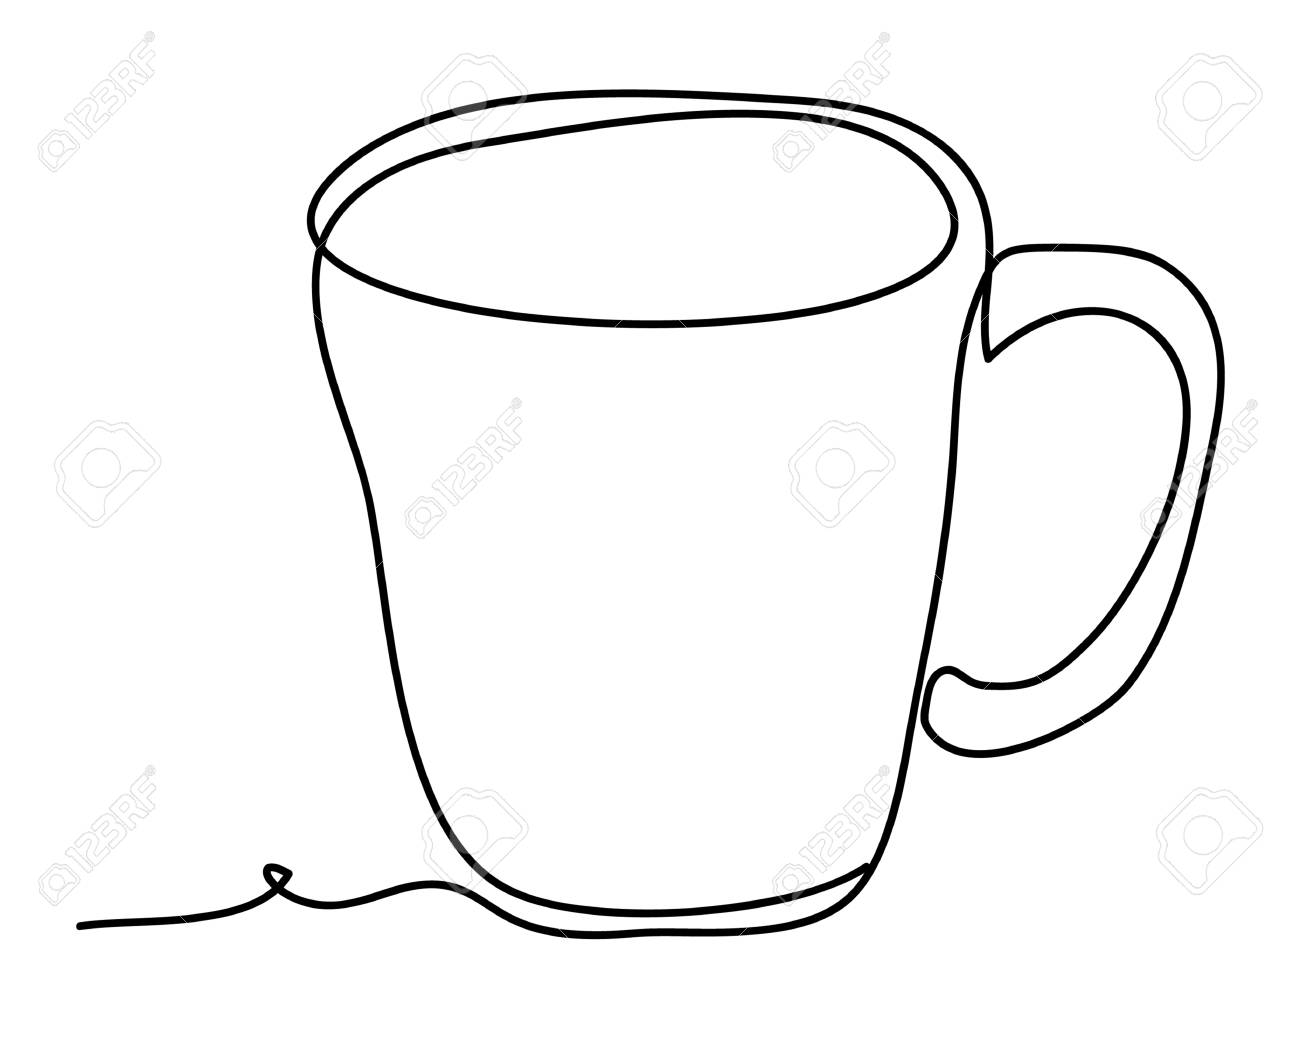 Cup Of Tea Vector Illustration Isolated On White Background Royalty Free Cliparts Vectors And Stock Illustration Image 110523867